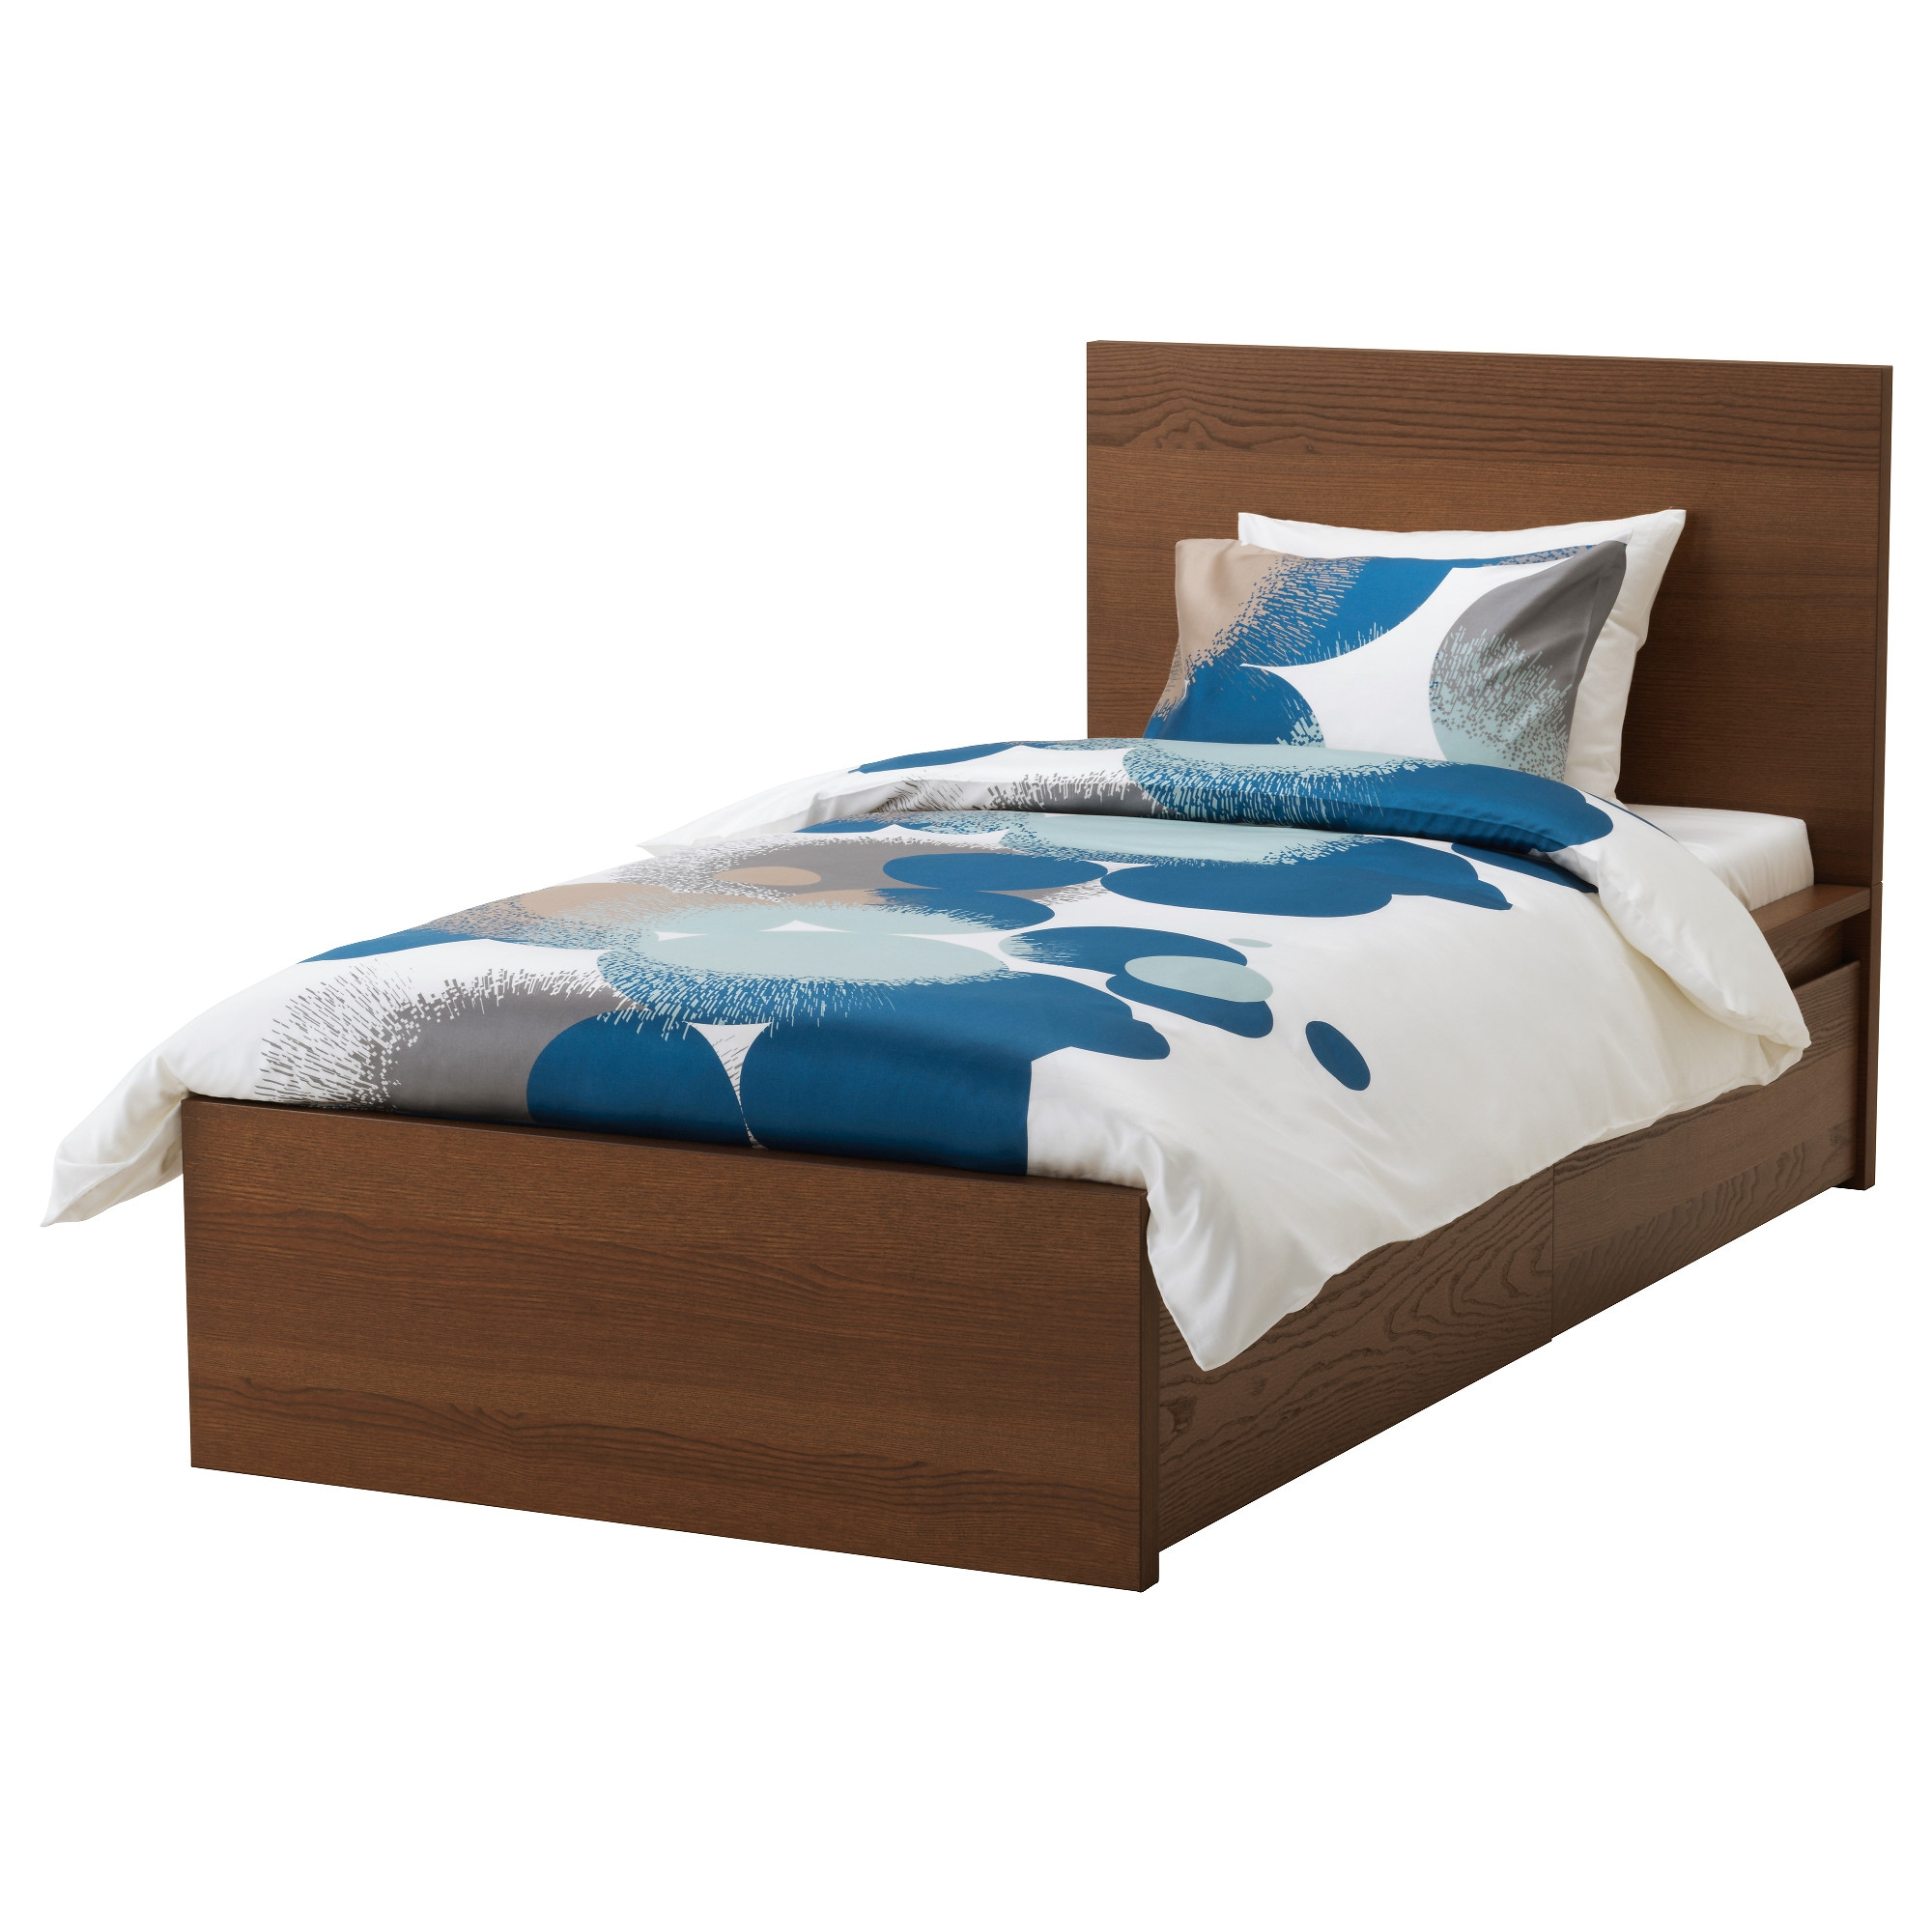 Bed frames with storage drawers - Malm High Bed Frame 2 Storage Boxes Brown Stained Ash Veneer Lur Y Height